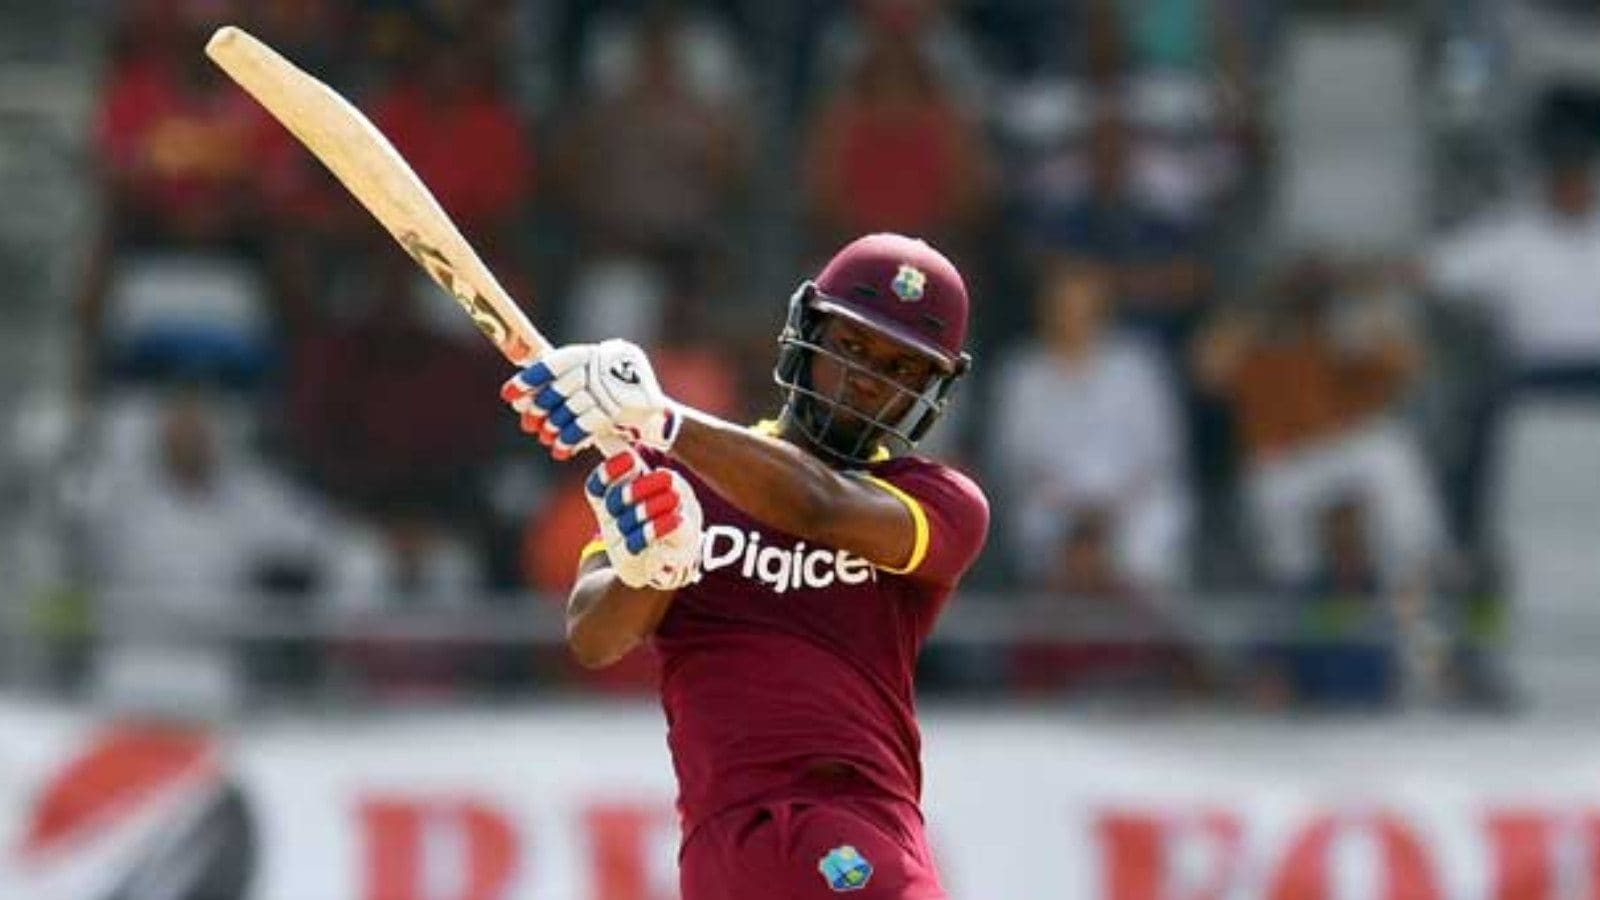 Rajasthan Royals Sign Evin Lewis and Oshane Thomas to Replace Jos Buttler and Ben Stokes